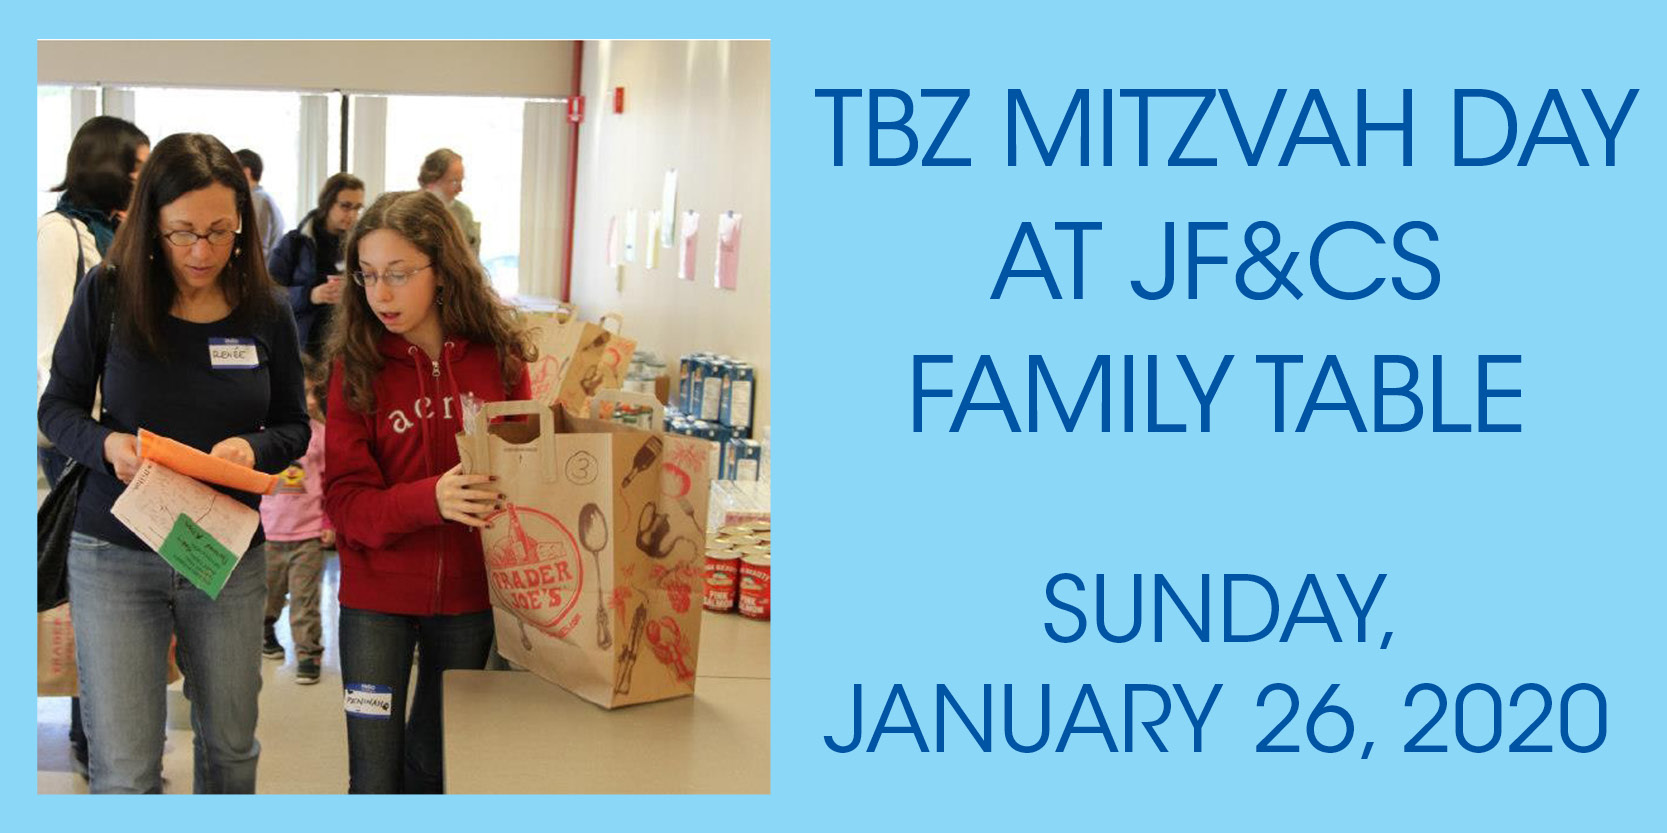 "<a href=""https://www.tbzbrookline.org/event/mitzvah-day-at-jfcs-family-table.html""